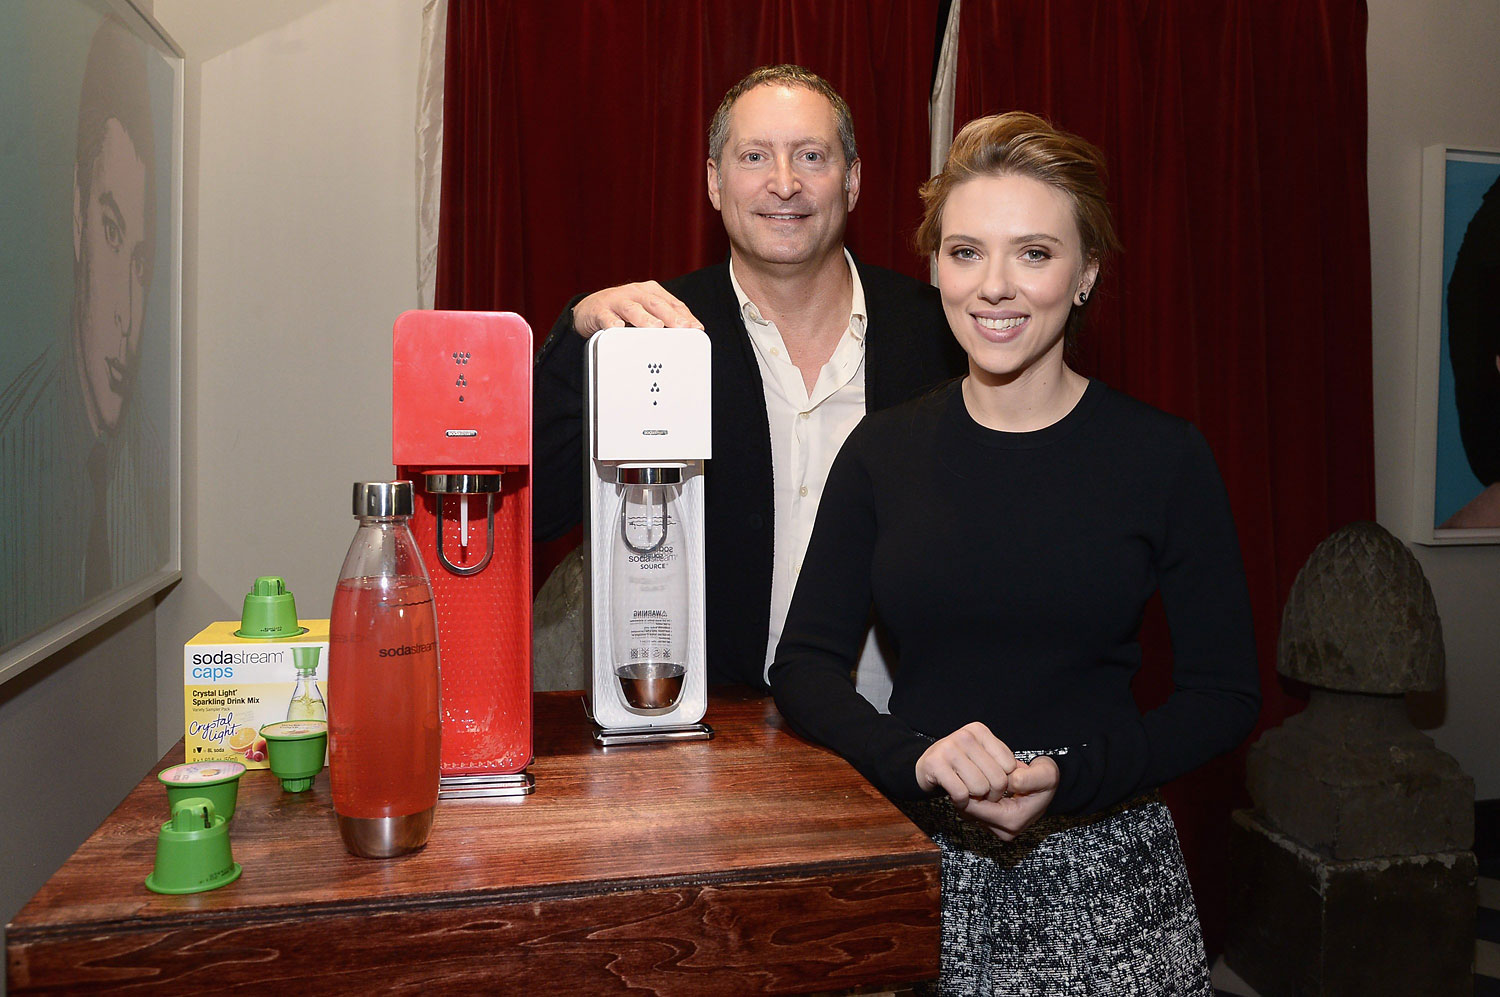 SodaStream unveiled Scarlett Johansson as its first-ever Global Brand Ambassador on Jan. 10, 2014 in New York.